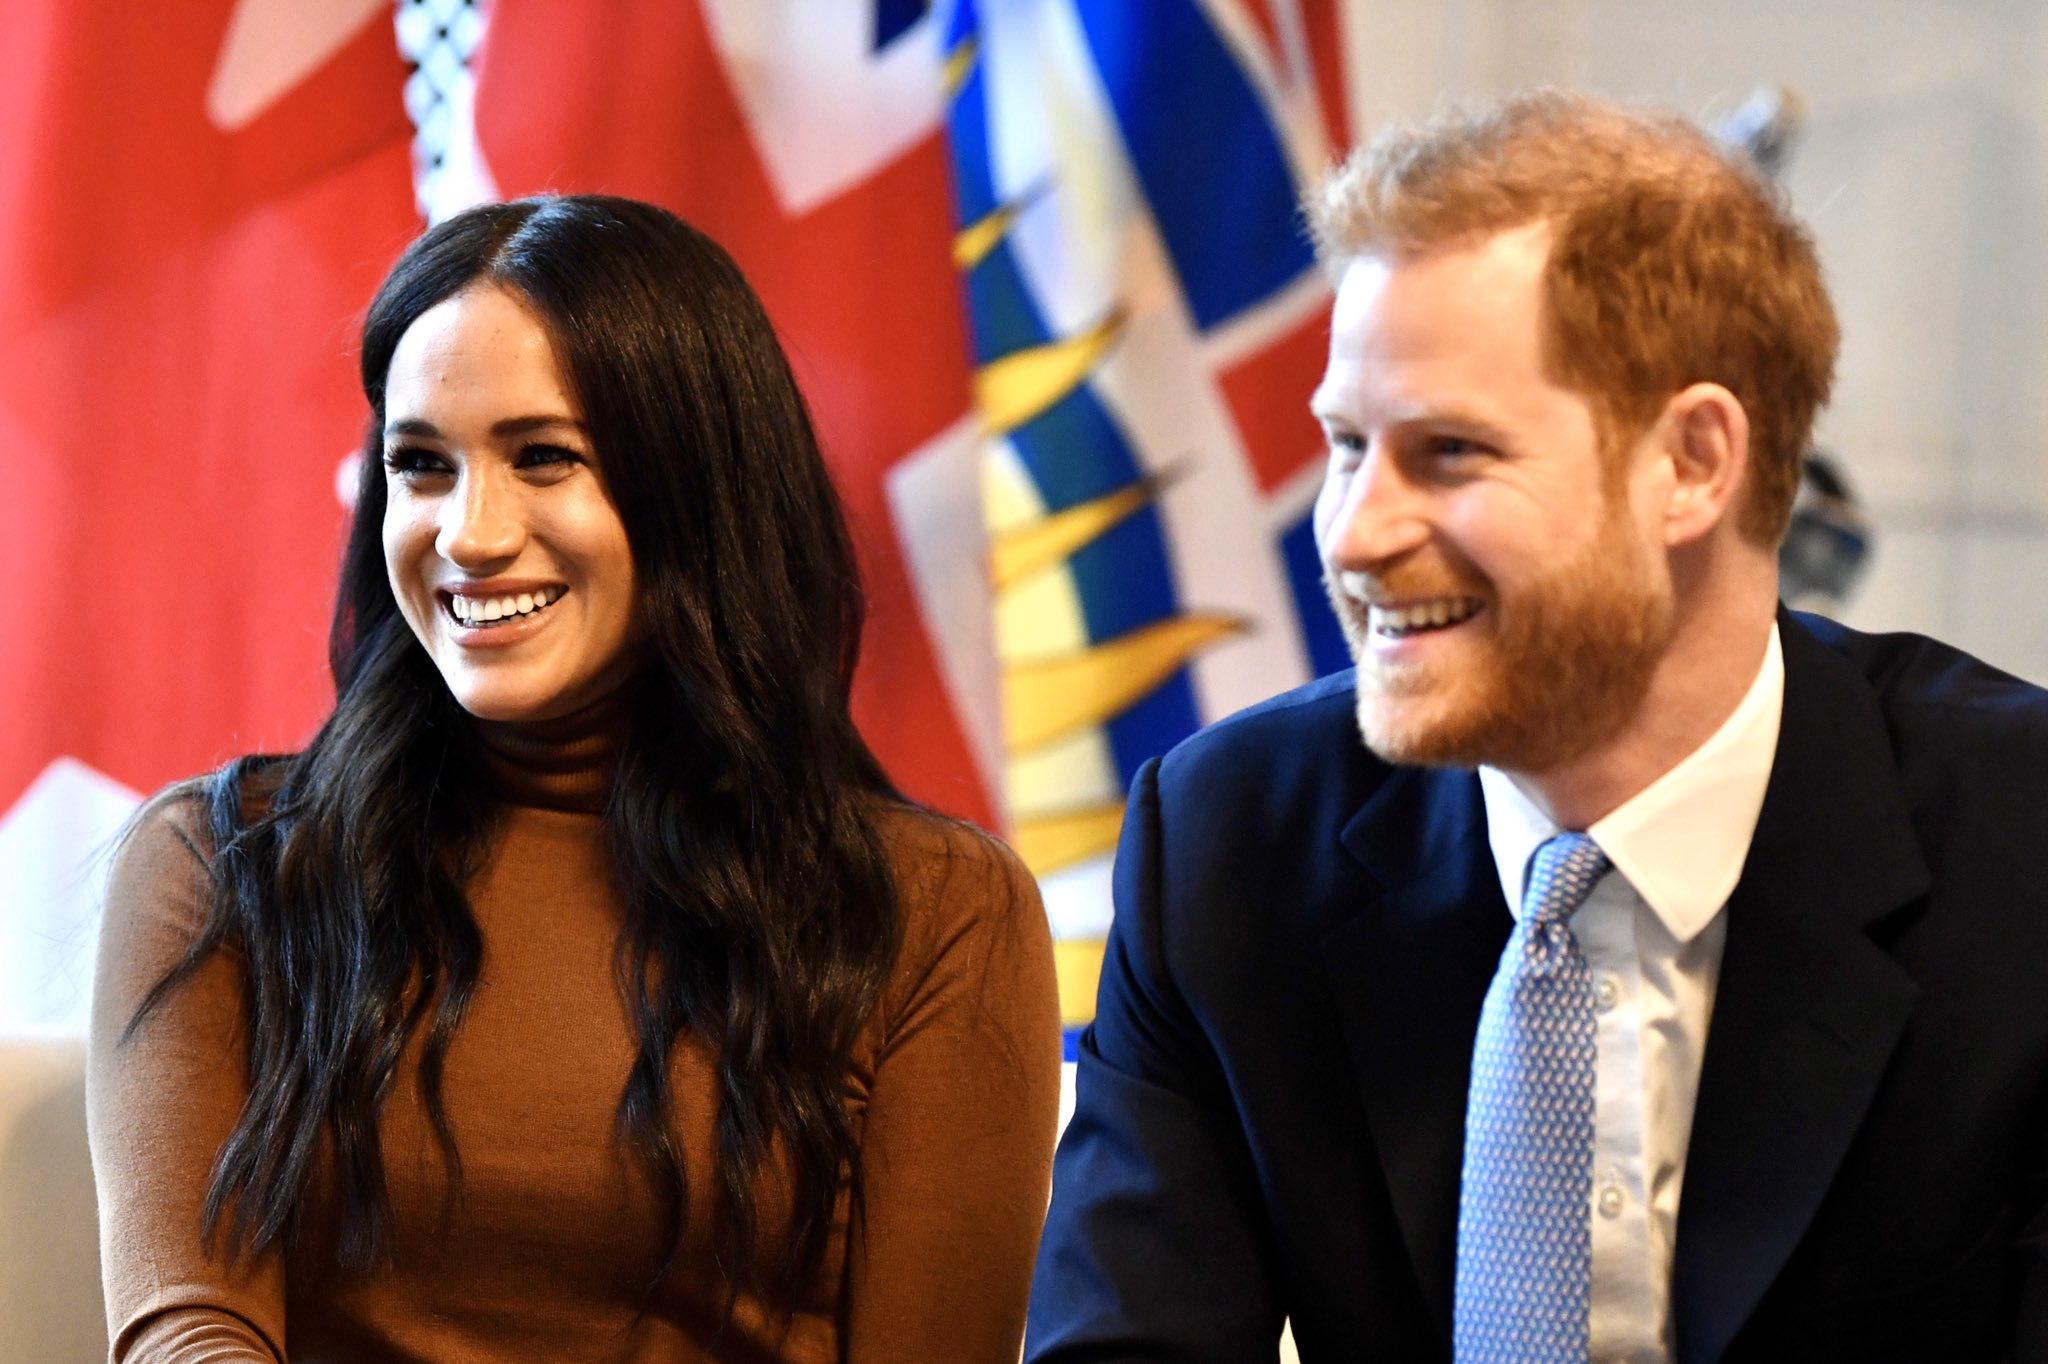 Prince Harry and Meghan will no longer be allowed to carry their royal titles as part of the separation process from the royal family. Photo courtesy: Twitter/@RoyalFamily